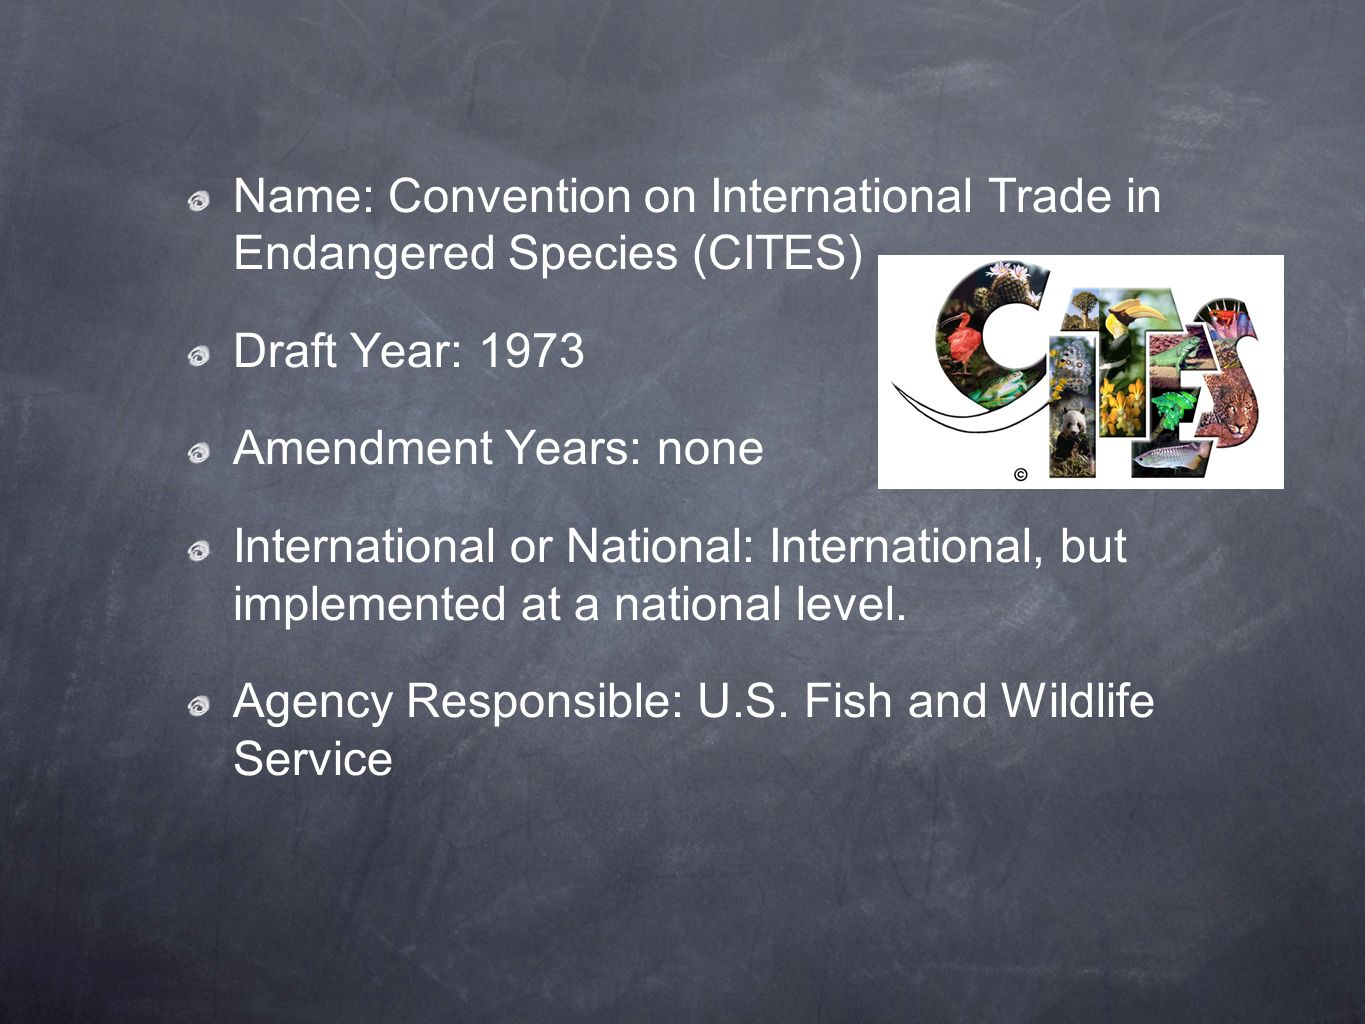 Name: Convention on International Trade in Endangered Species (CITES) Draft Year: 1973 Amendment Years: none International or National: International,